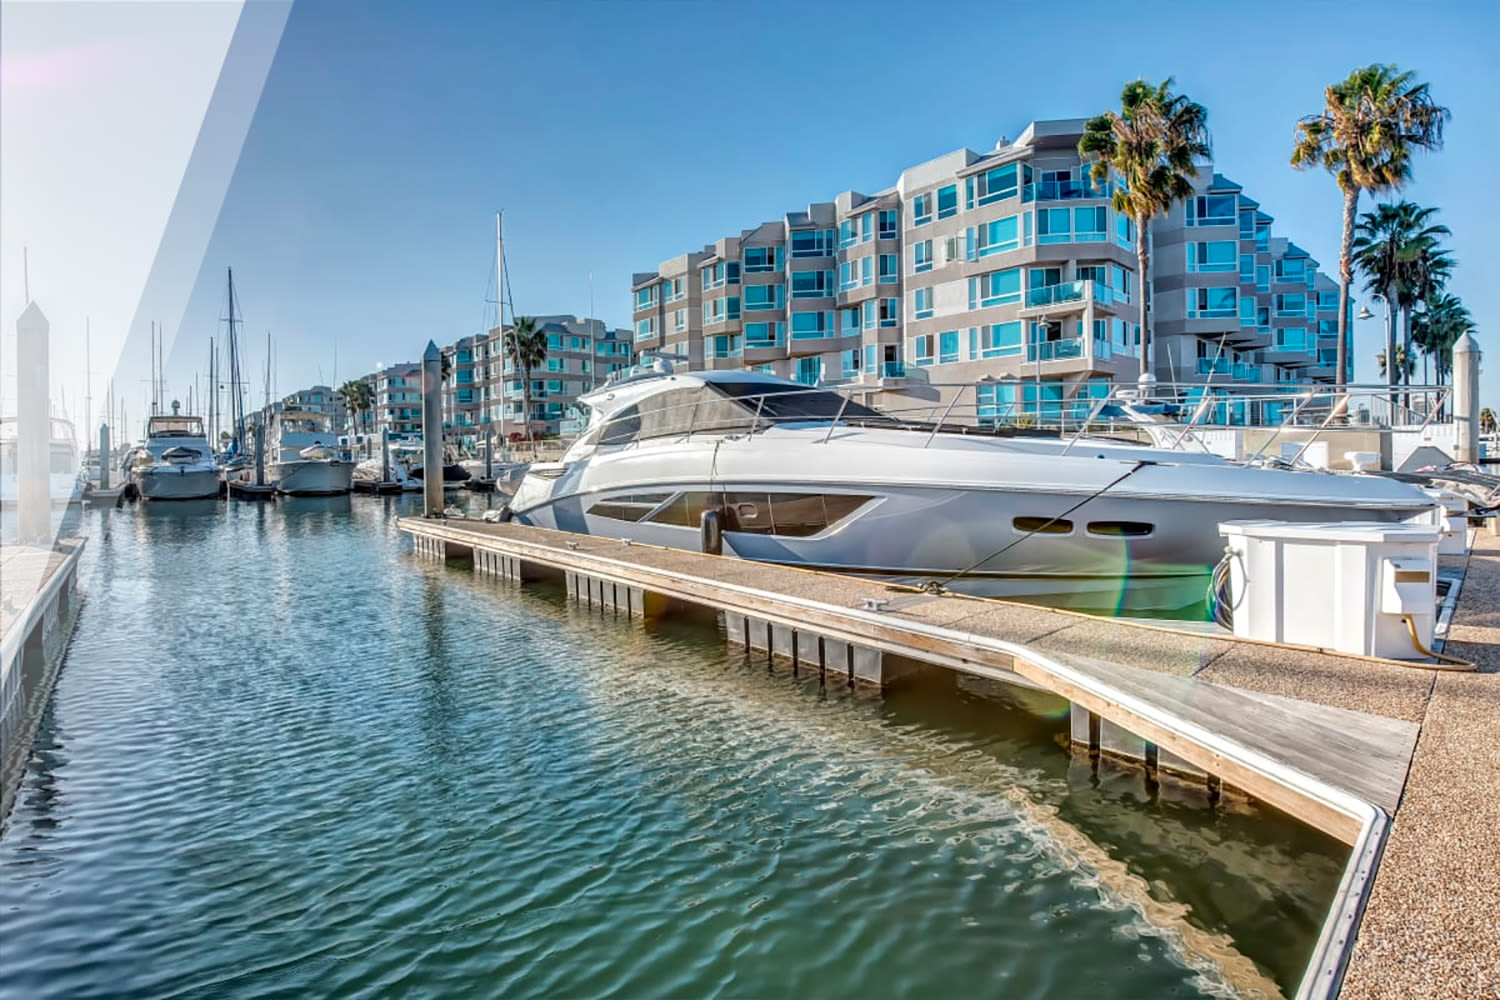 Yacht moored at the marina at our Esprit property at E&S Ring Management Corporation in Los Angeles, California